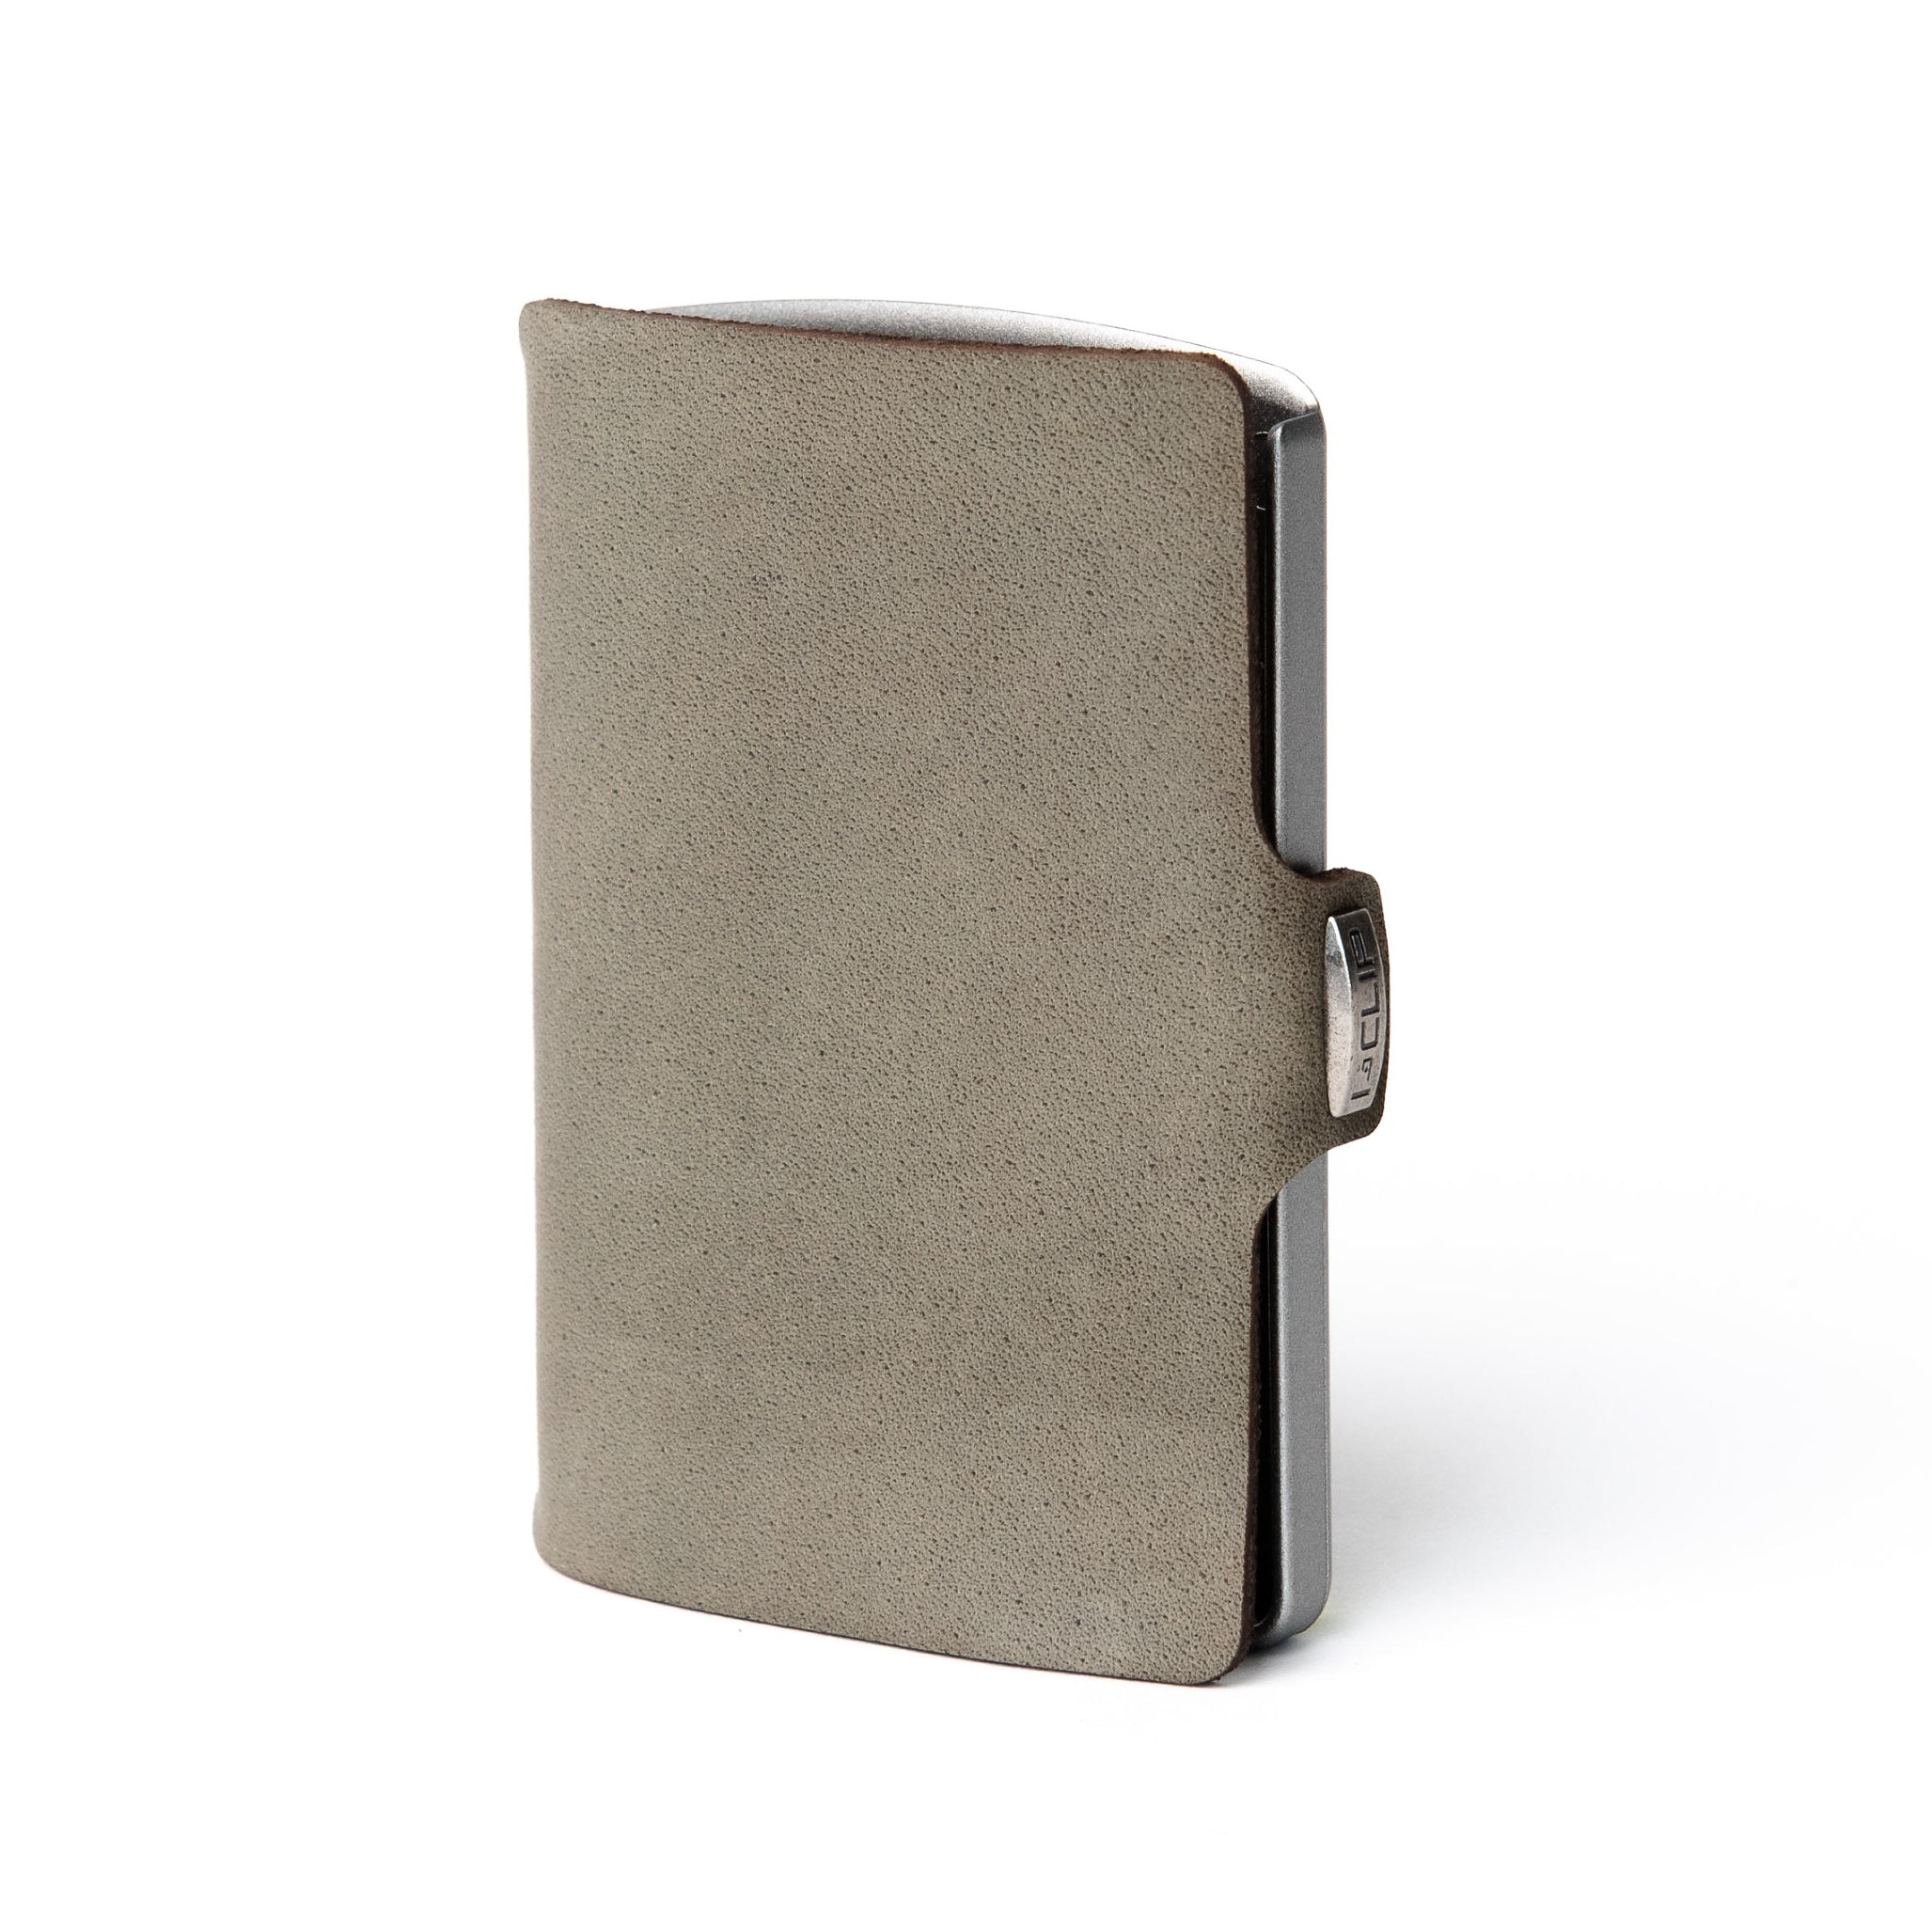 Soft Touch Leather - Olive / Metallic Gray Frame - I-CLIP